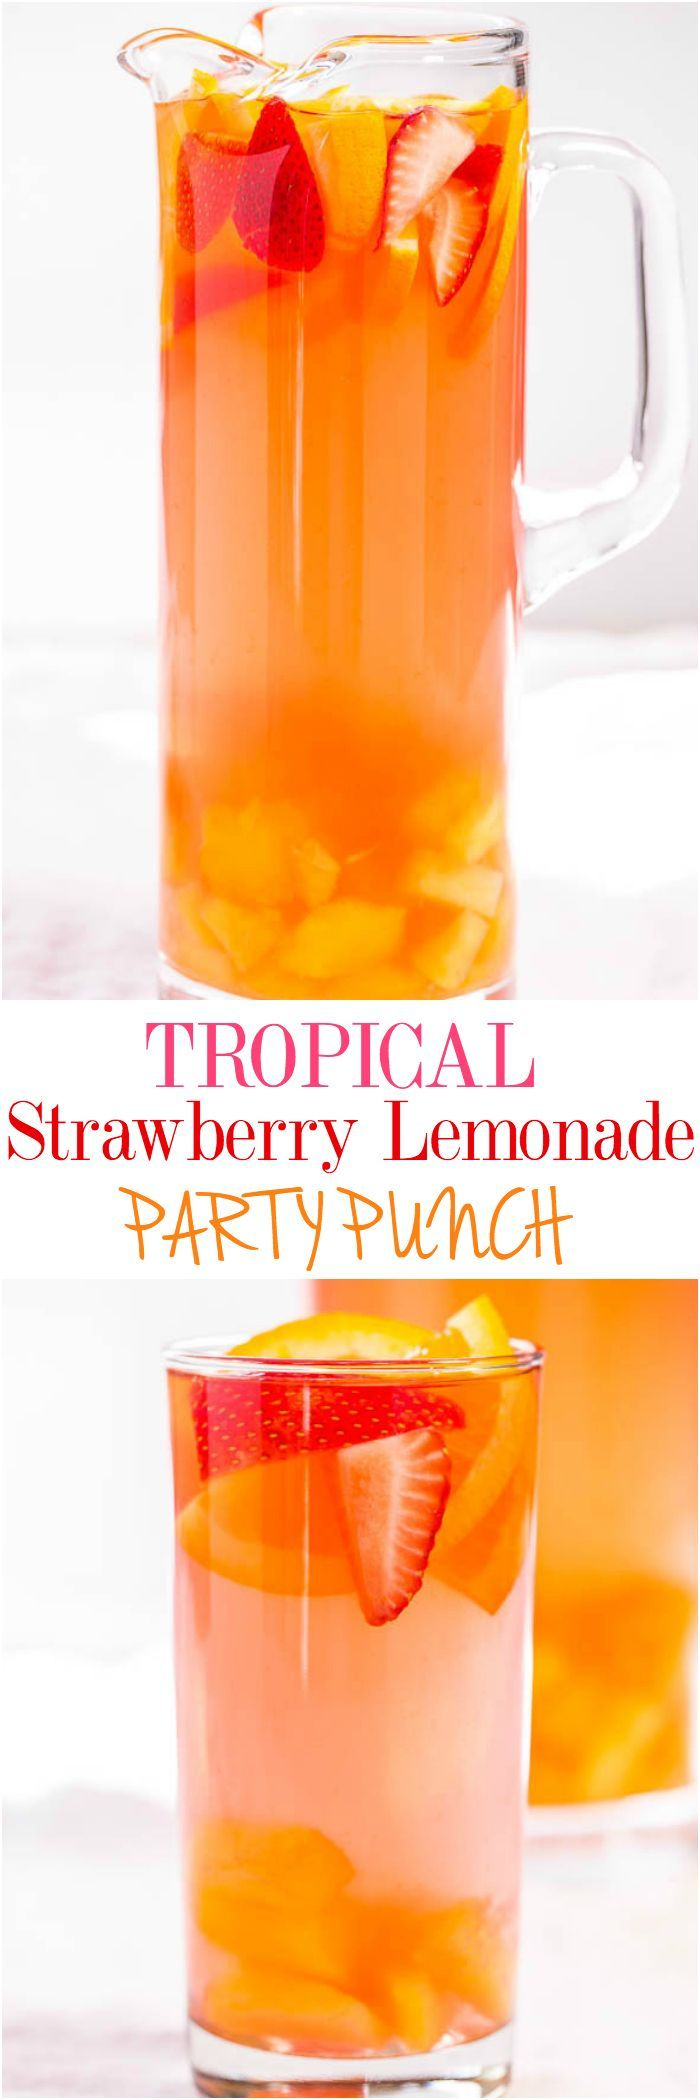 Tropical Strawberry Lemonade Party Punch - Sweet and citrusy with a tropical vibe! So fast and easy!! Punch and sangria all in one with loads of fruit!! (can be made virgin) (sweet alcoholic drinks sprites)